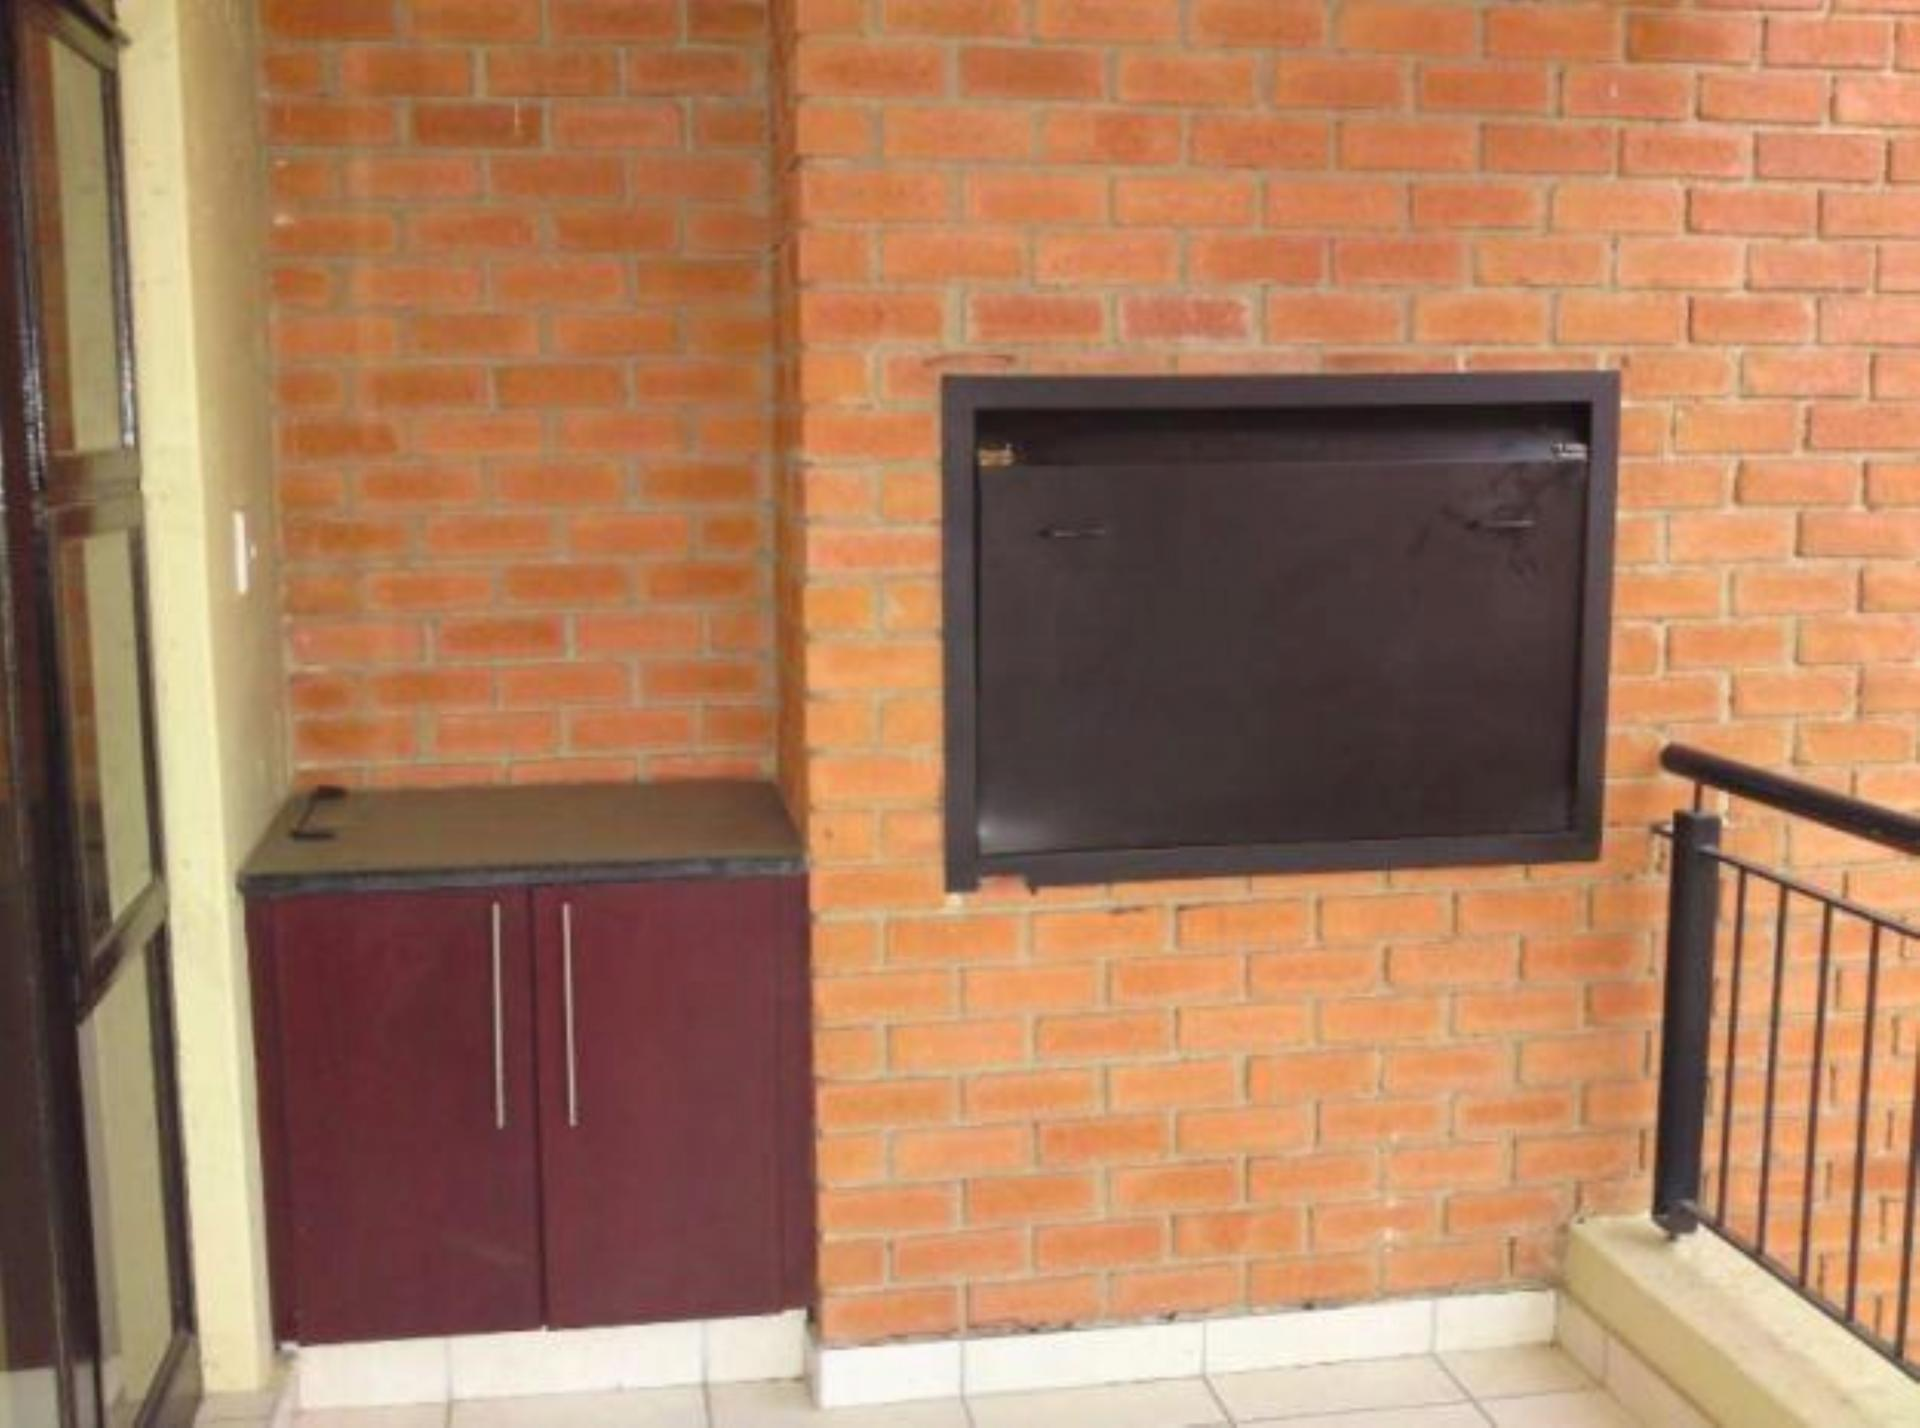 2 bedroom simplex for sale for sale in sunninghill - Bus from port authority to jersey gardens ...